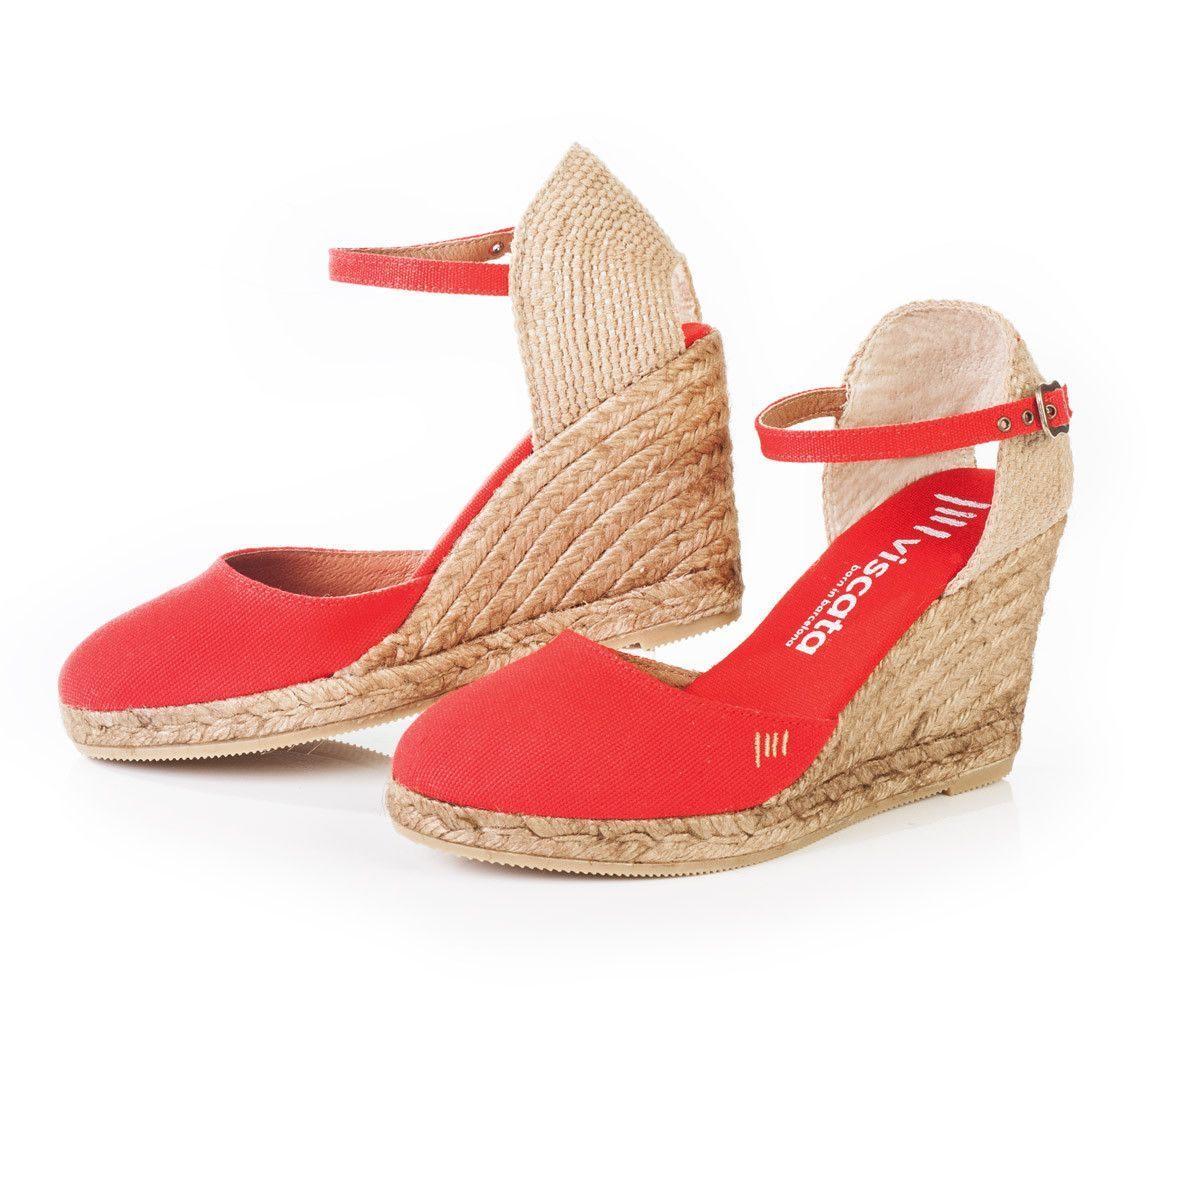 dd63e614753c Red Espadrille Wedges for Women by Viscata